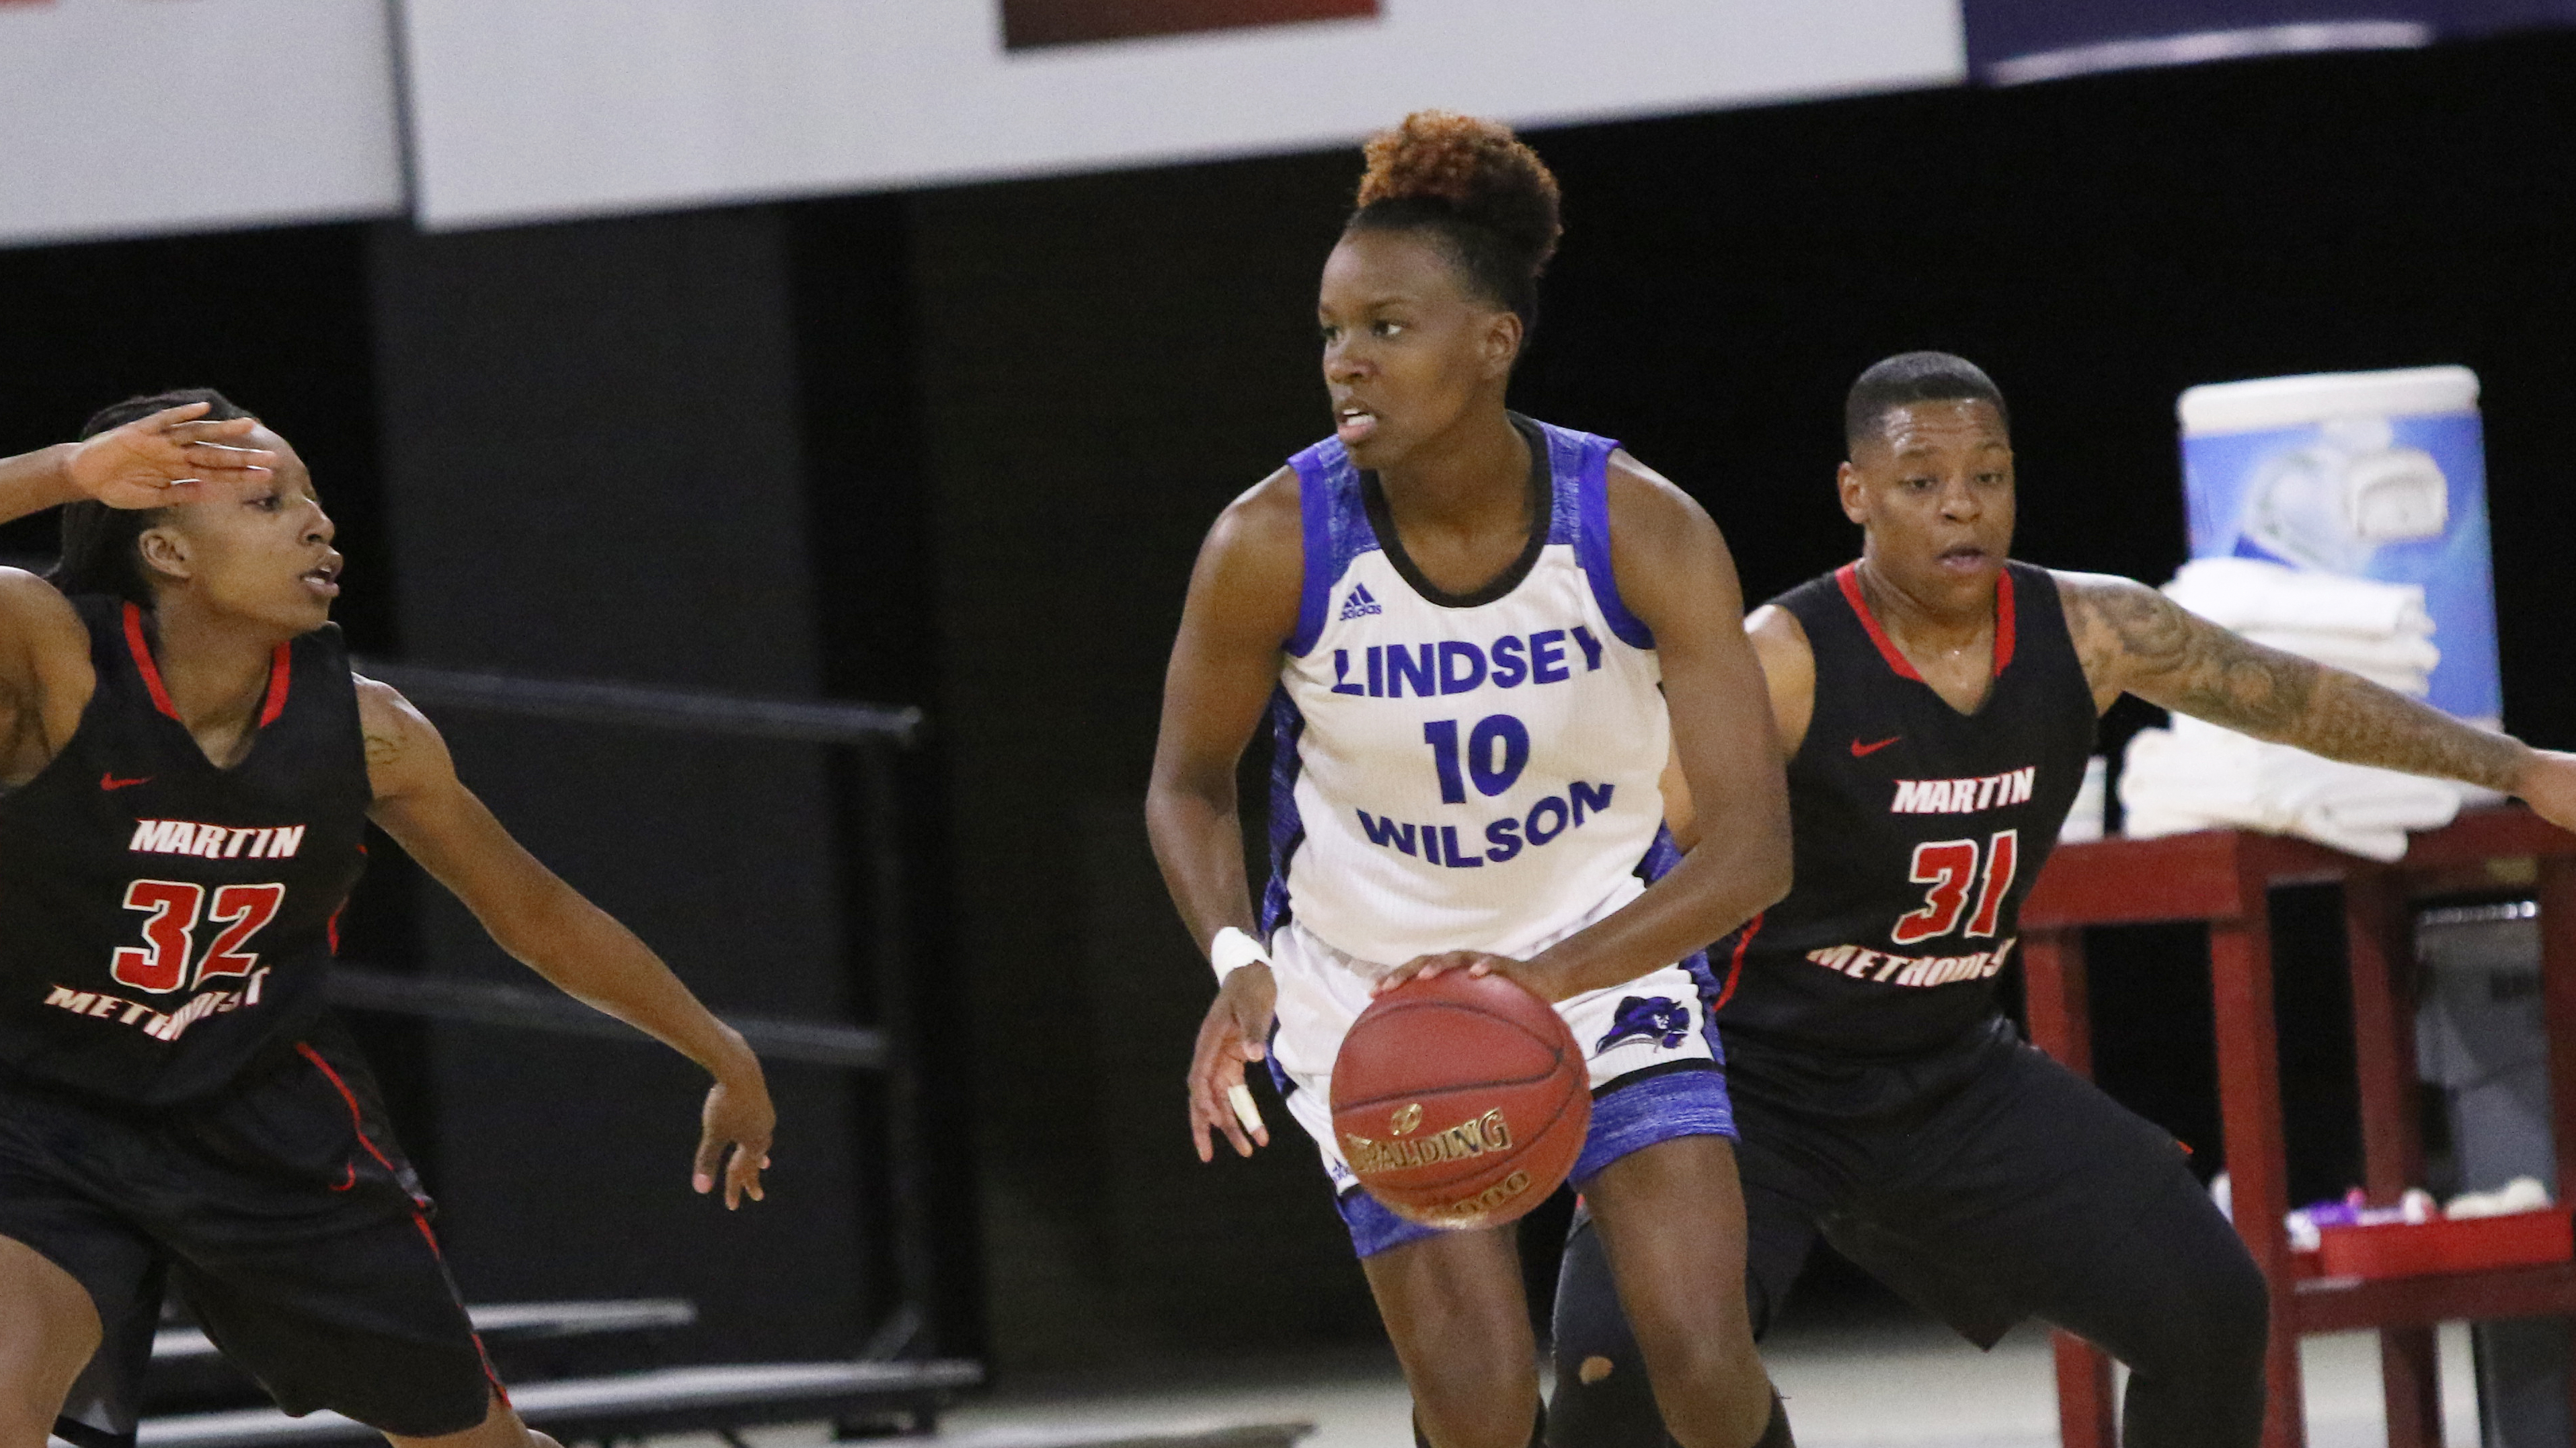 Lindsey Wilson (Ky.) Survives Martin Methodist (Tenn.) Comeback